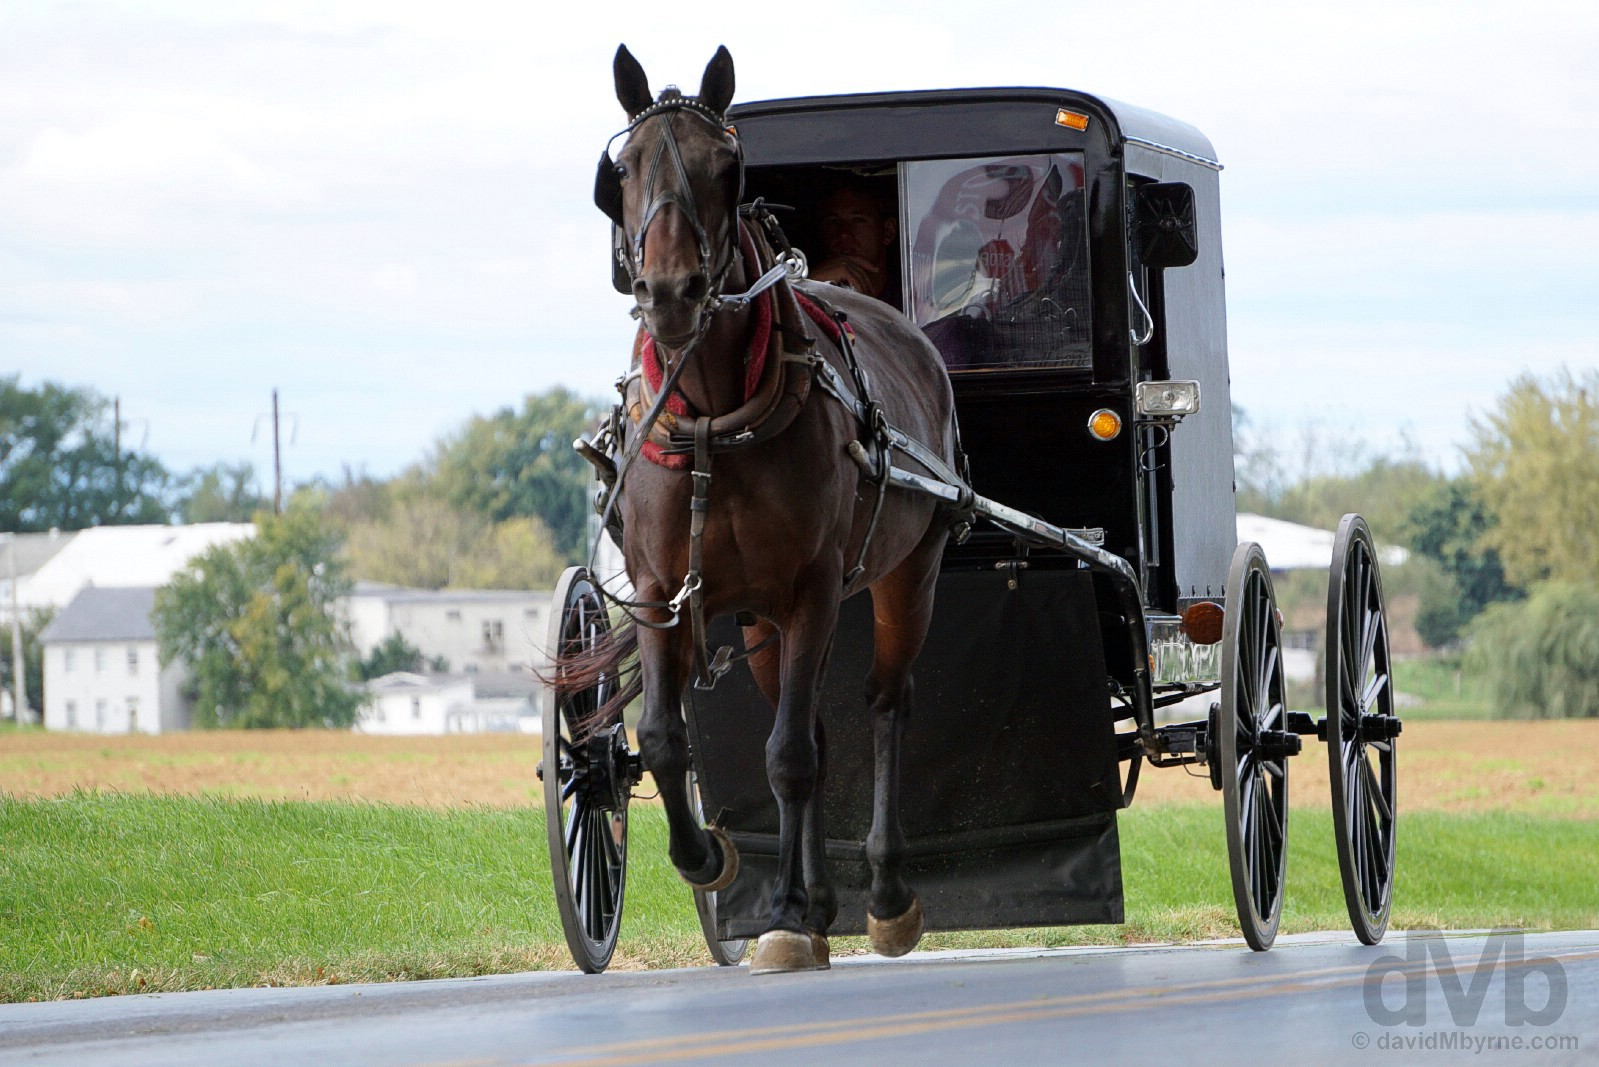 An Amish buggy on the roads outside Bird in Hand, Lancaster County, Pennsylvania, USA. September 30, 2017.